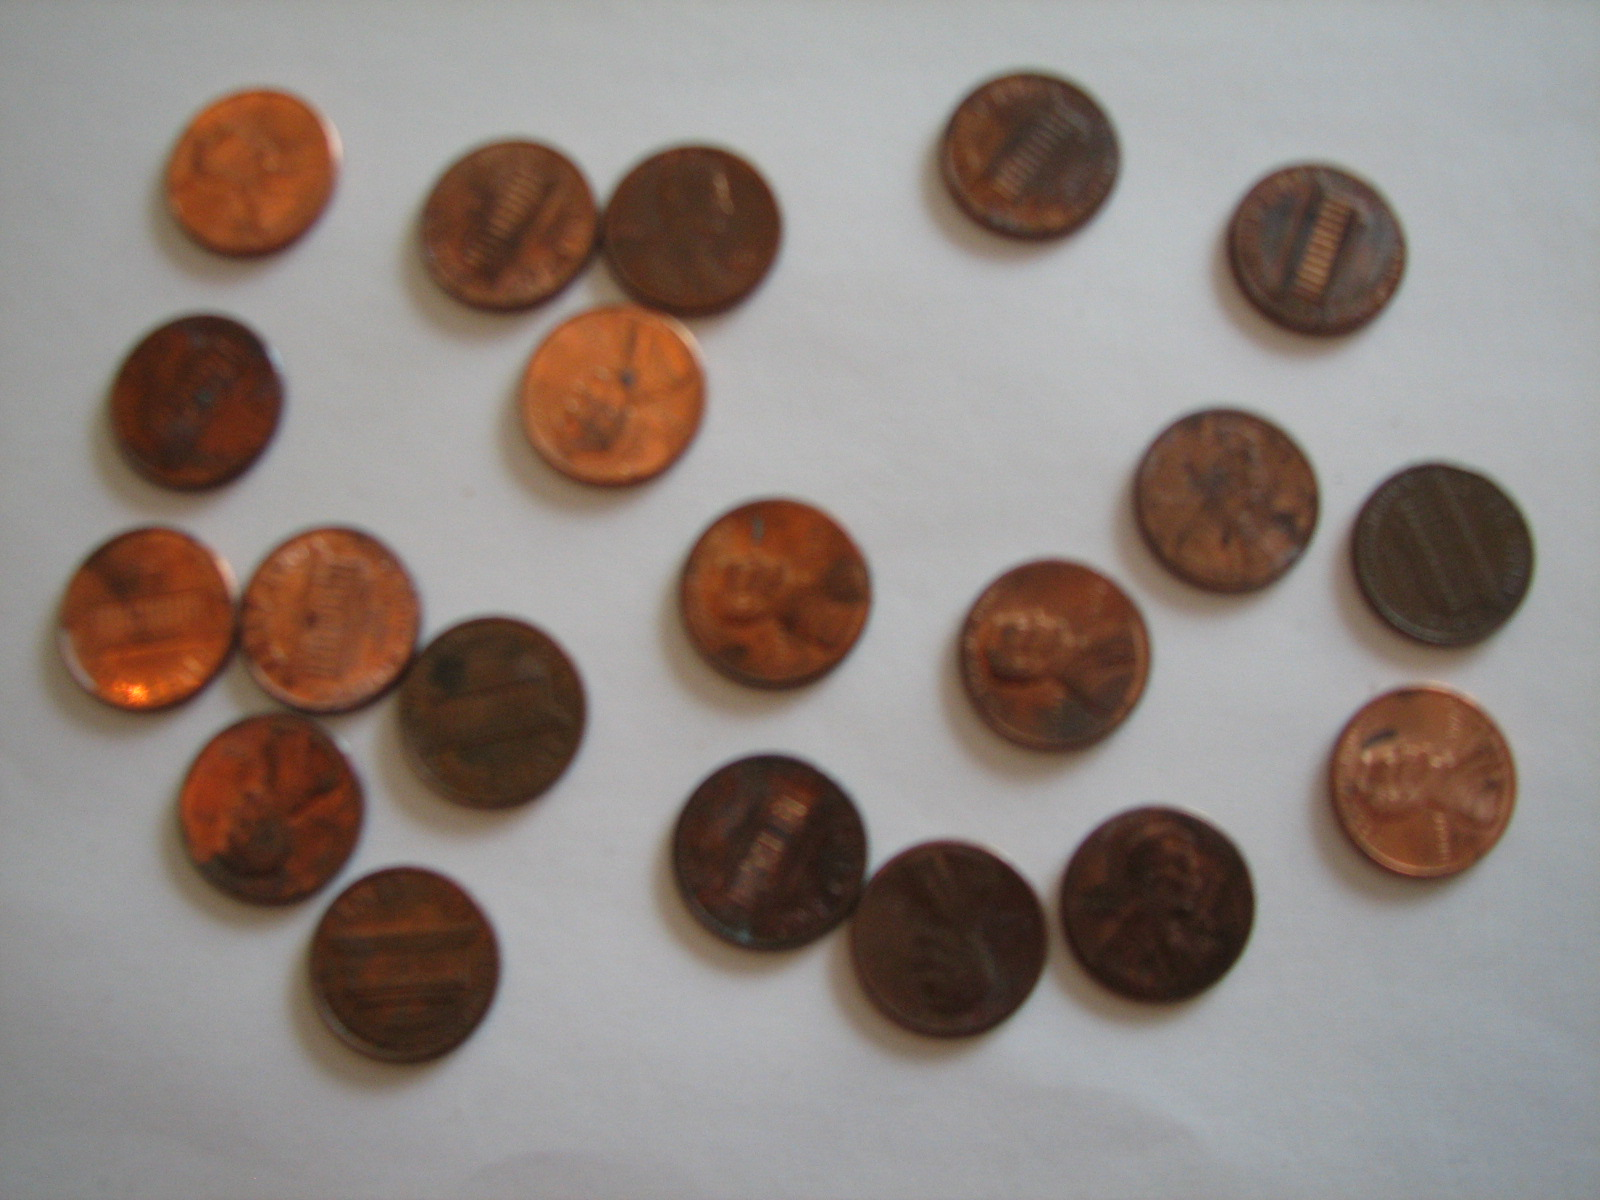 Science Matters Half Life The Penny Model